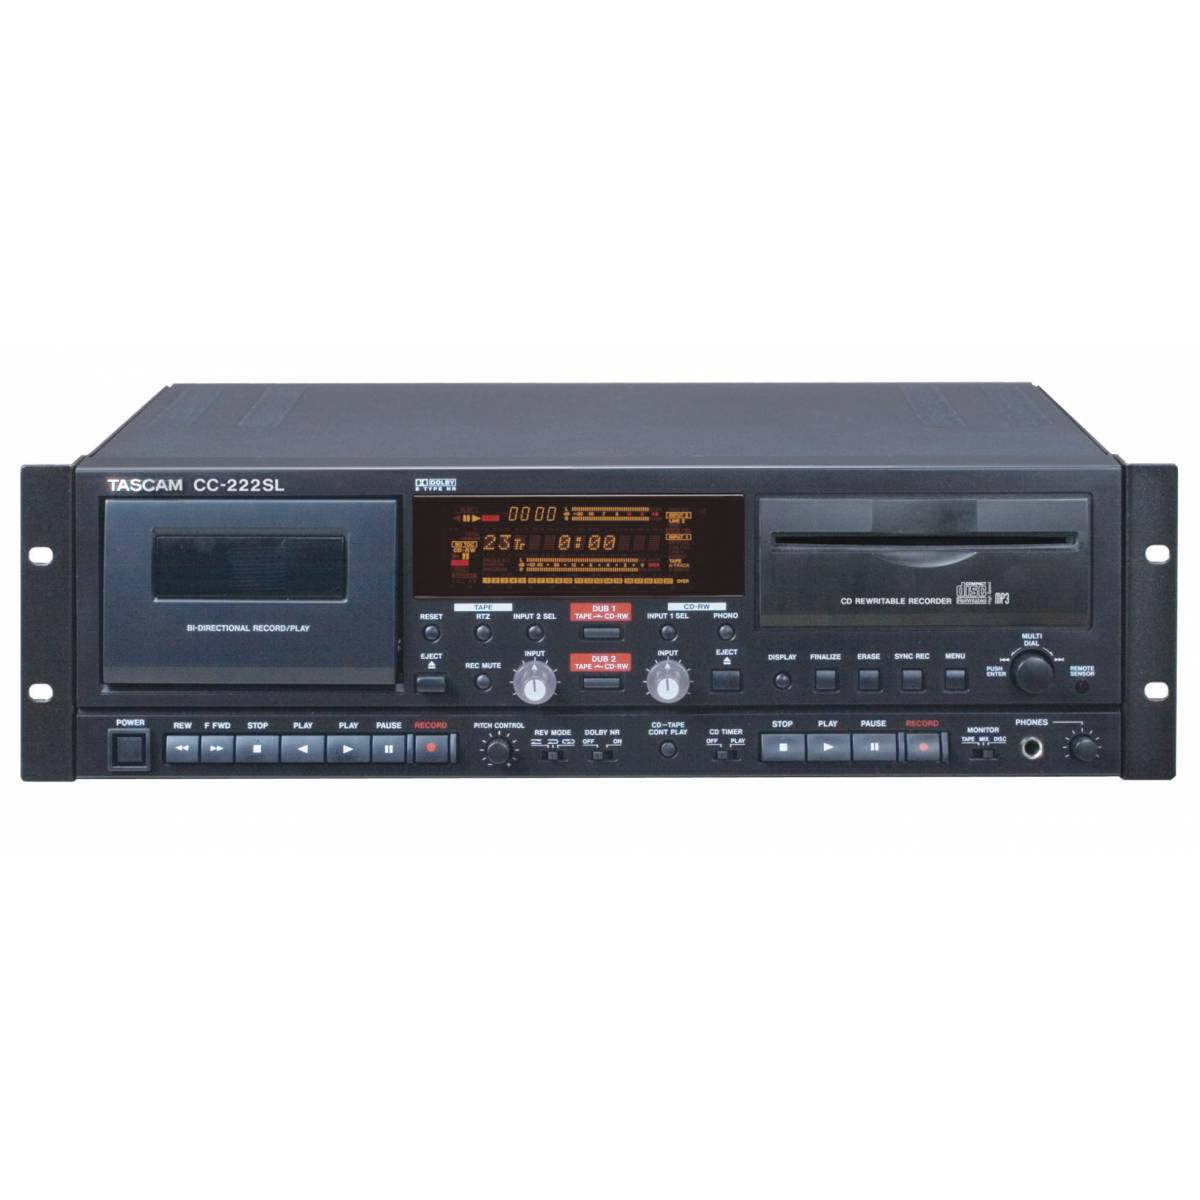 Tascam Cc 222sl Cd And Tape Player